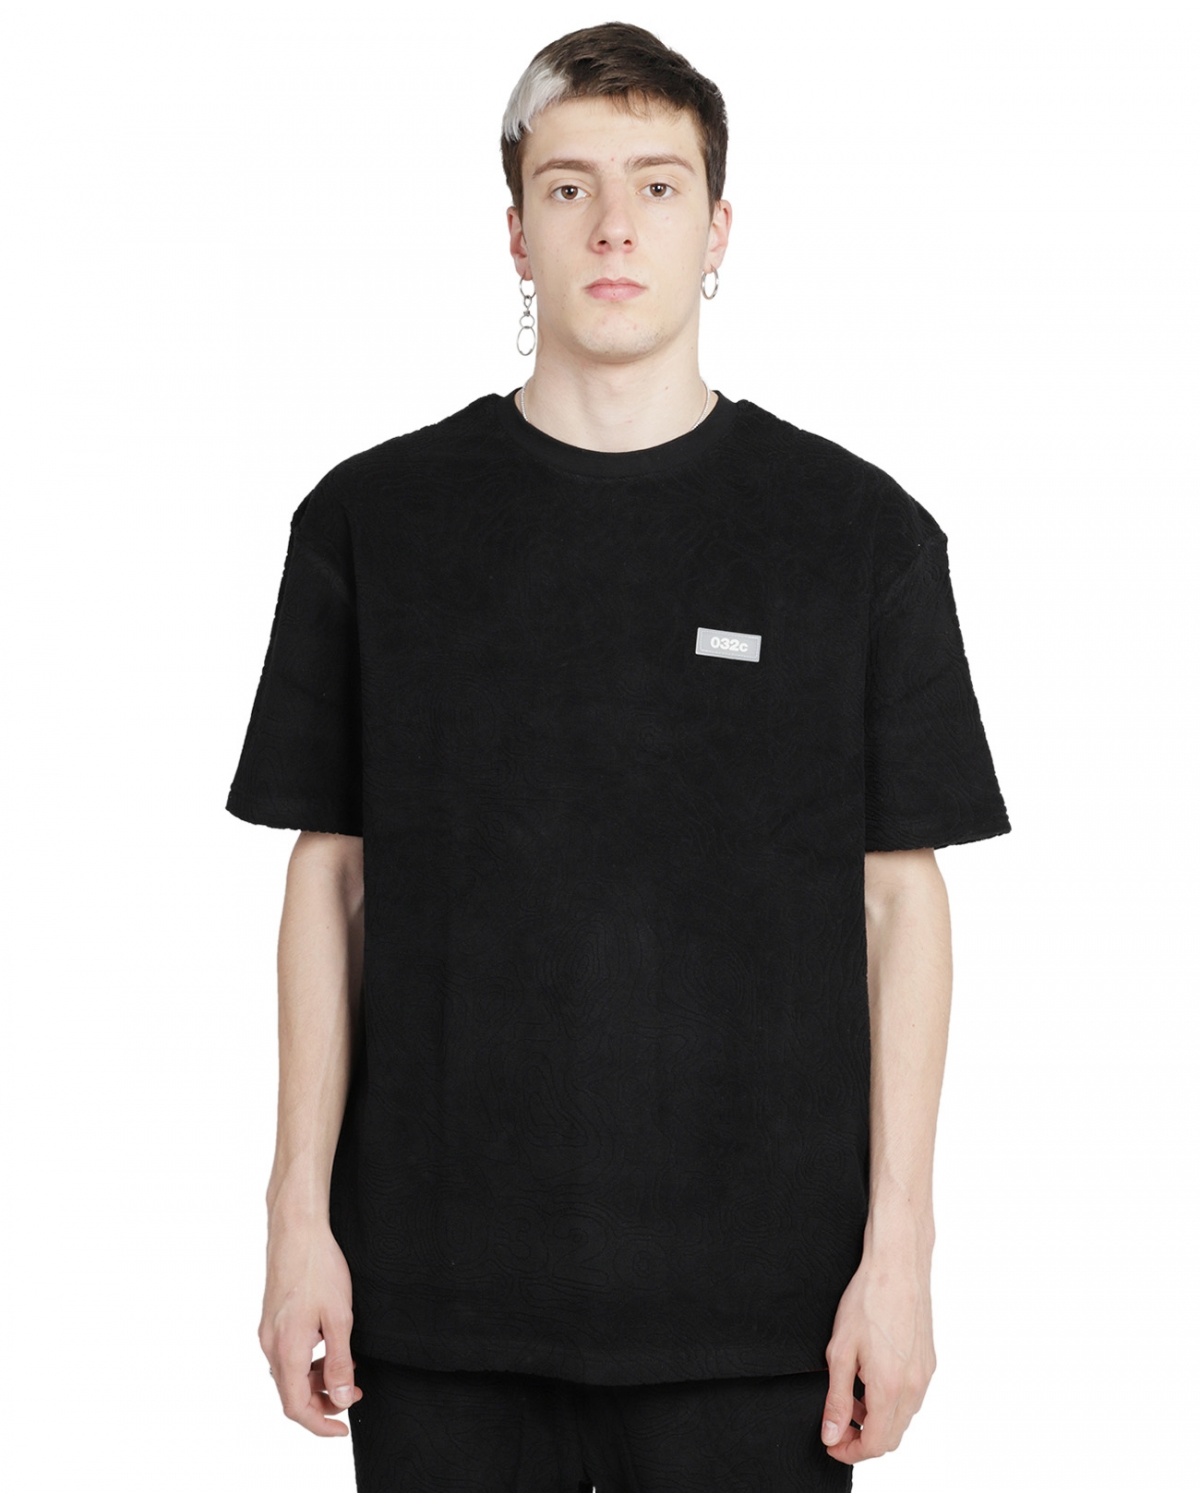 032c black Topos t-shirt